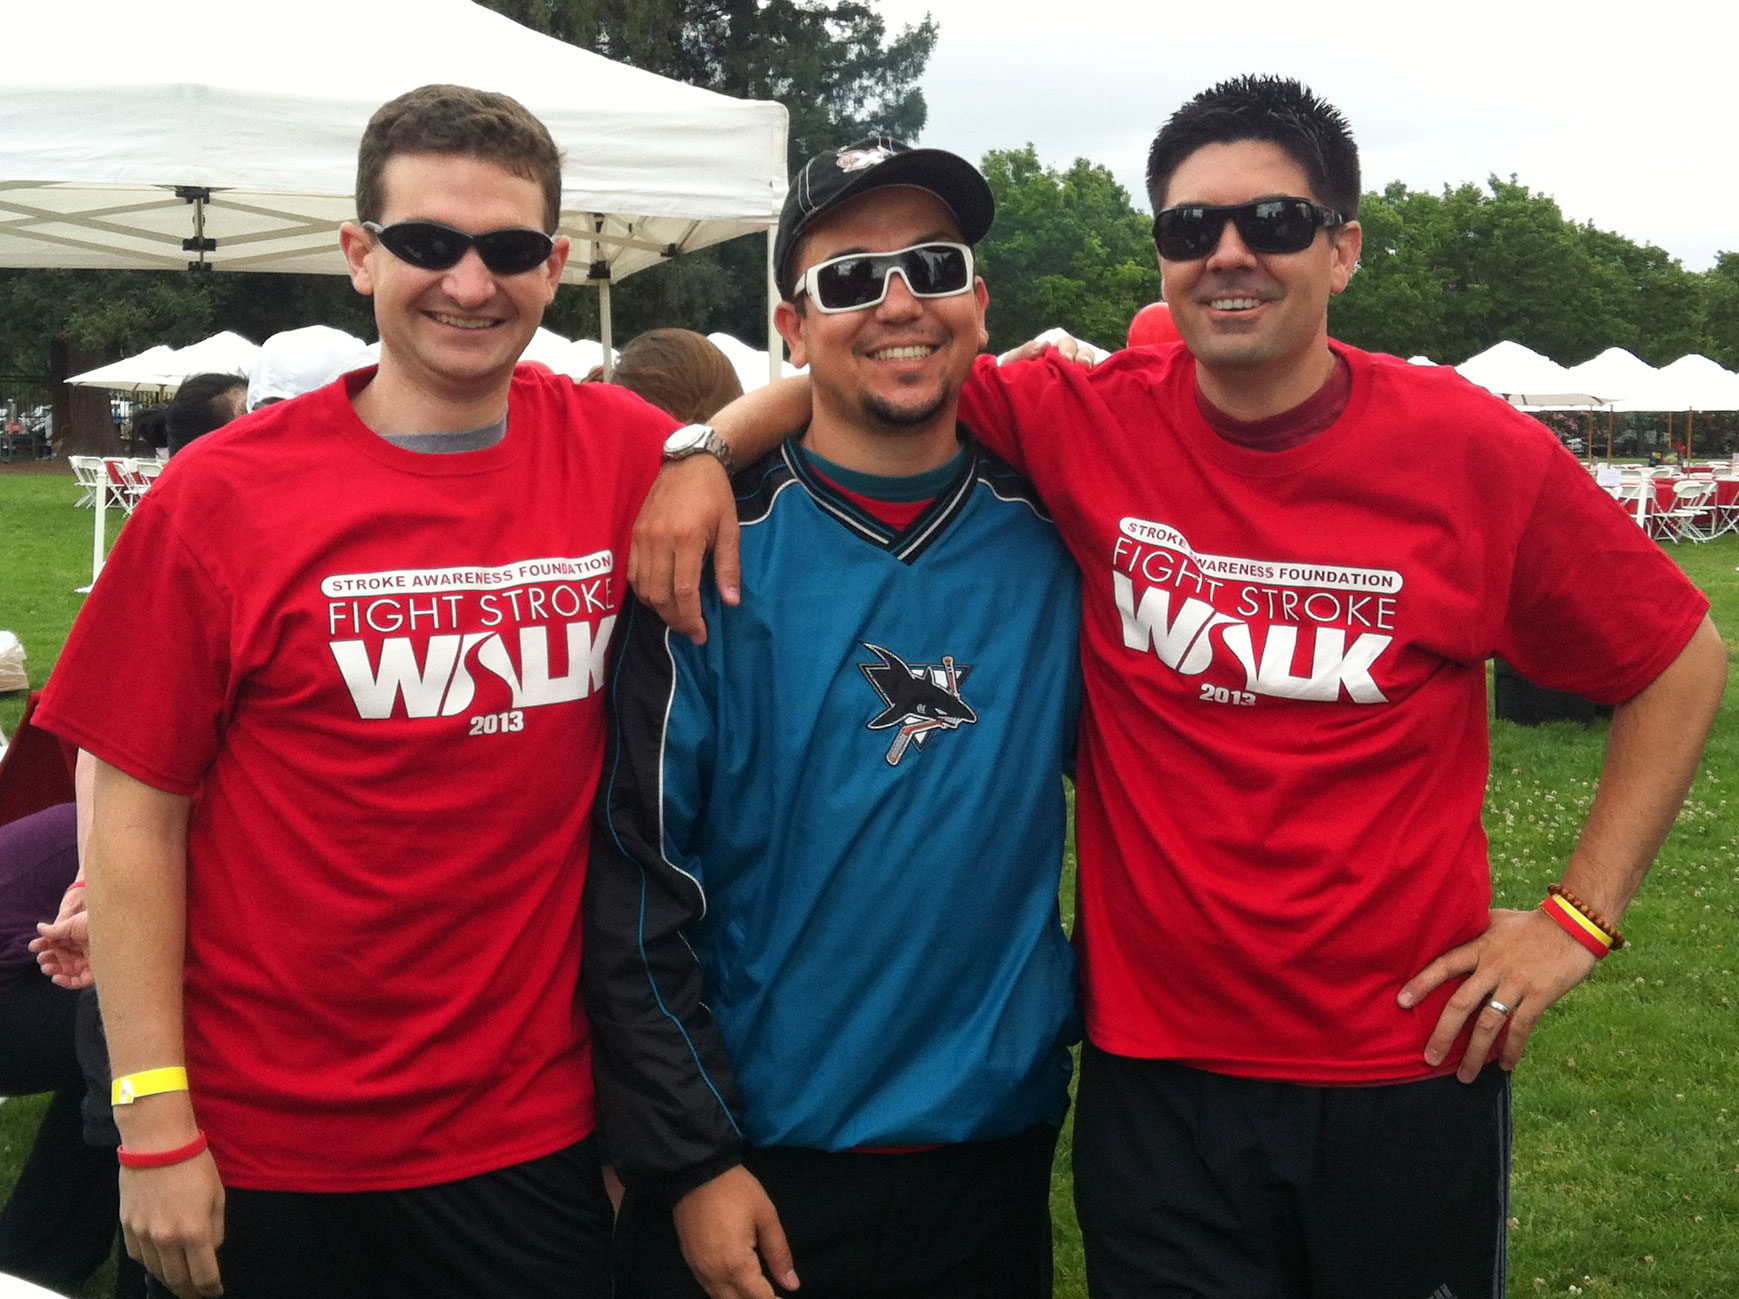 Will, Manny and Scott at the Stroke Awareness Foundation